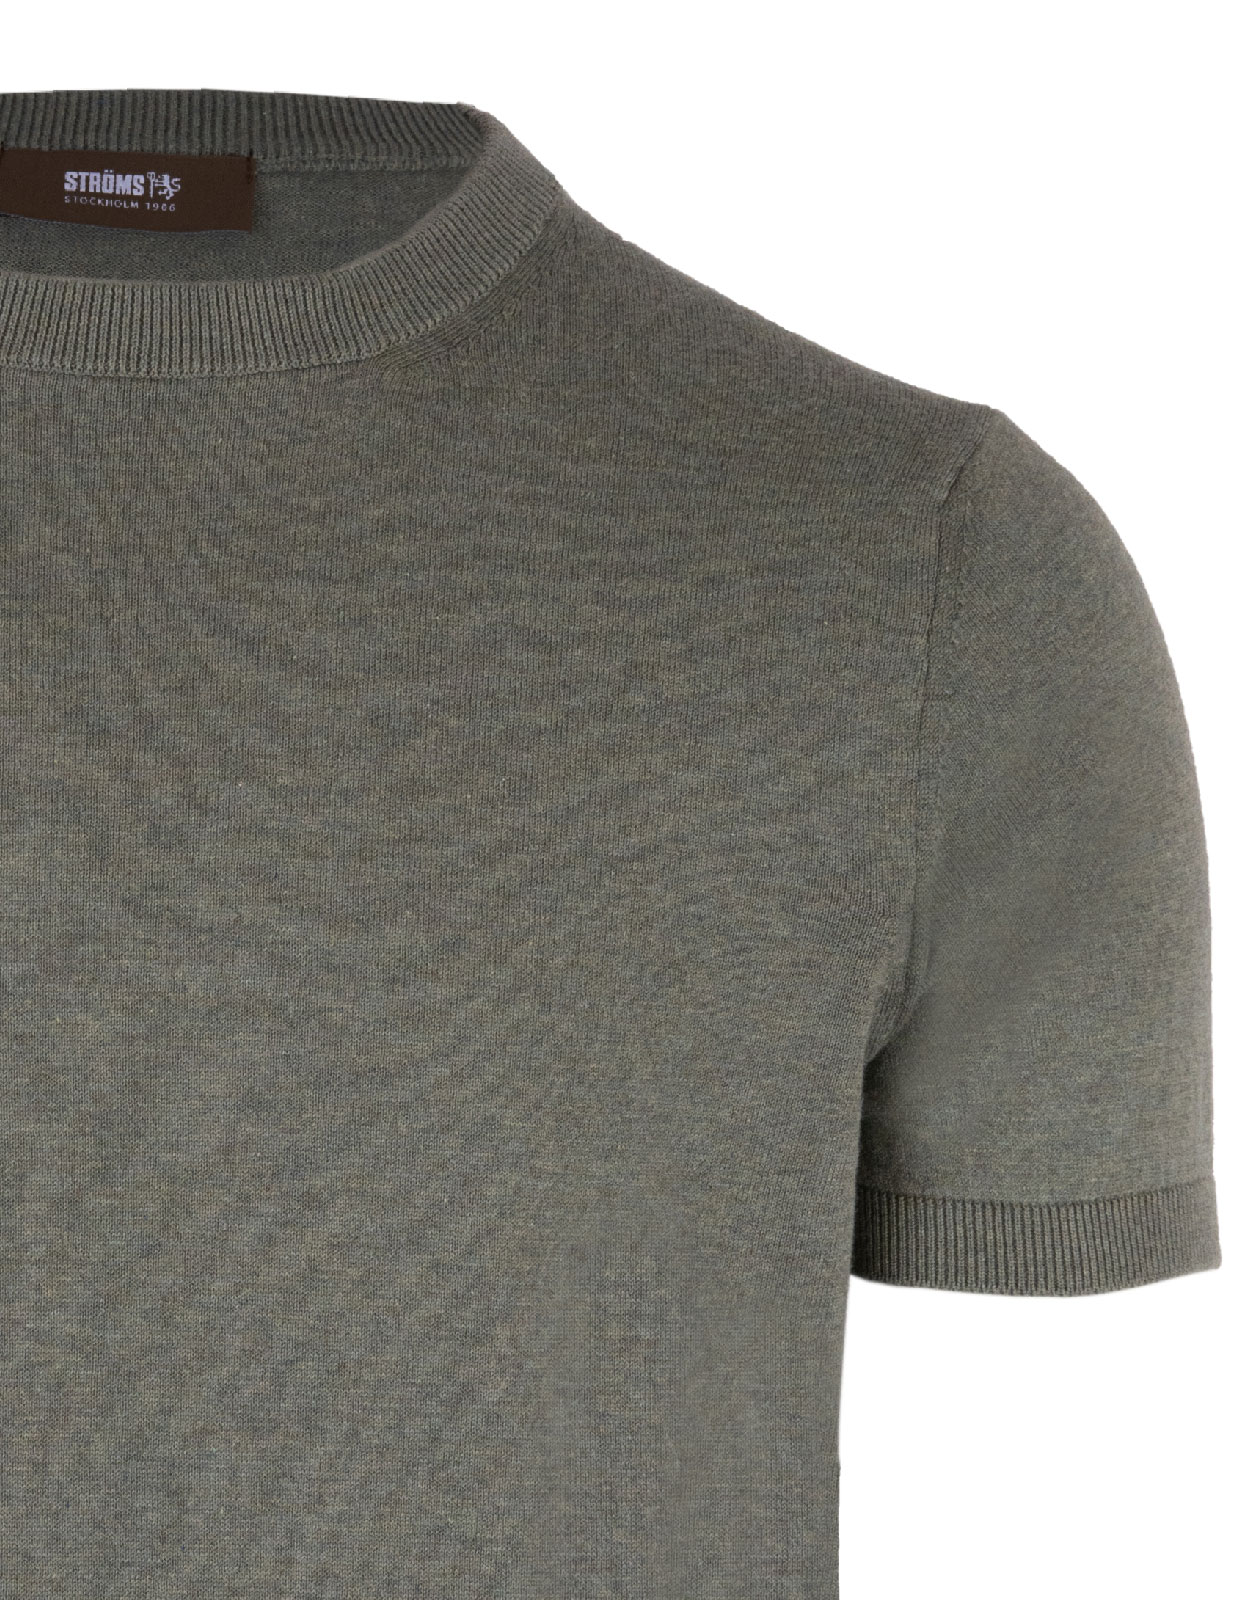 T-Shirt Knitted Cotton Verde Bosco